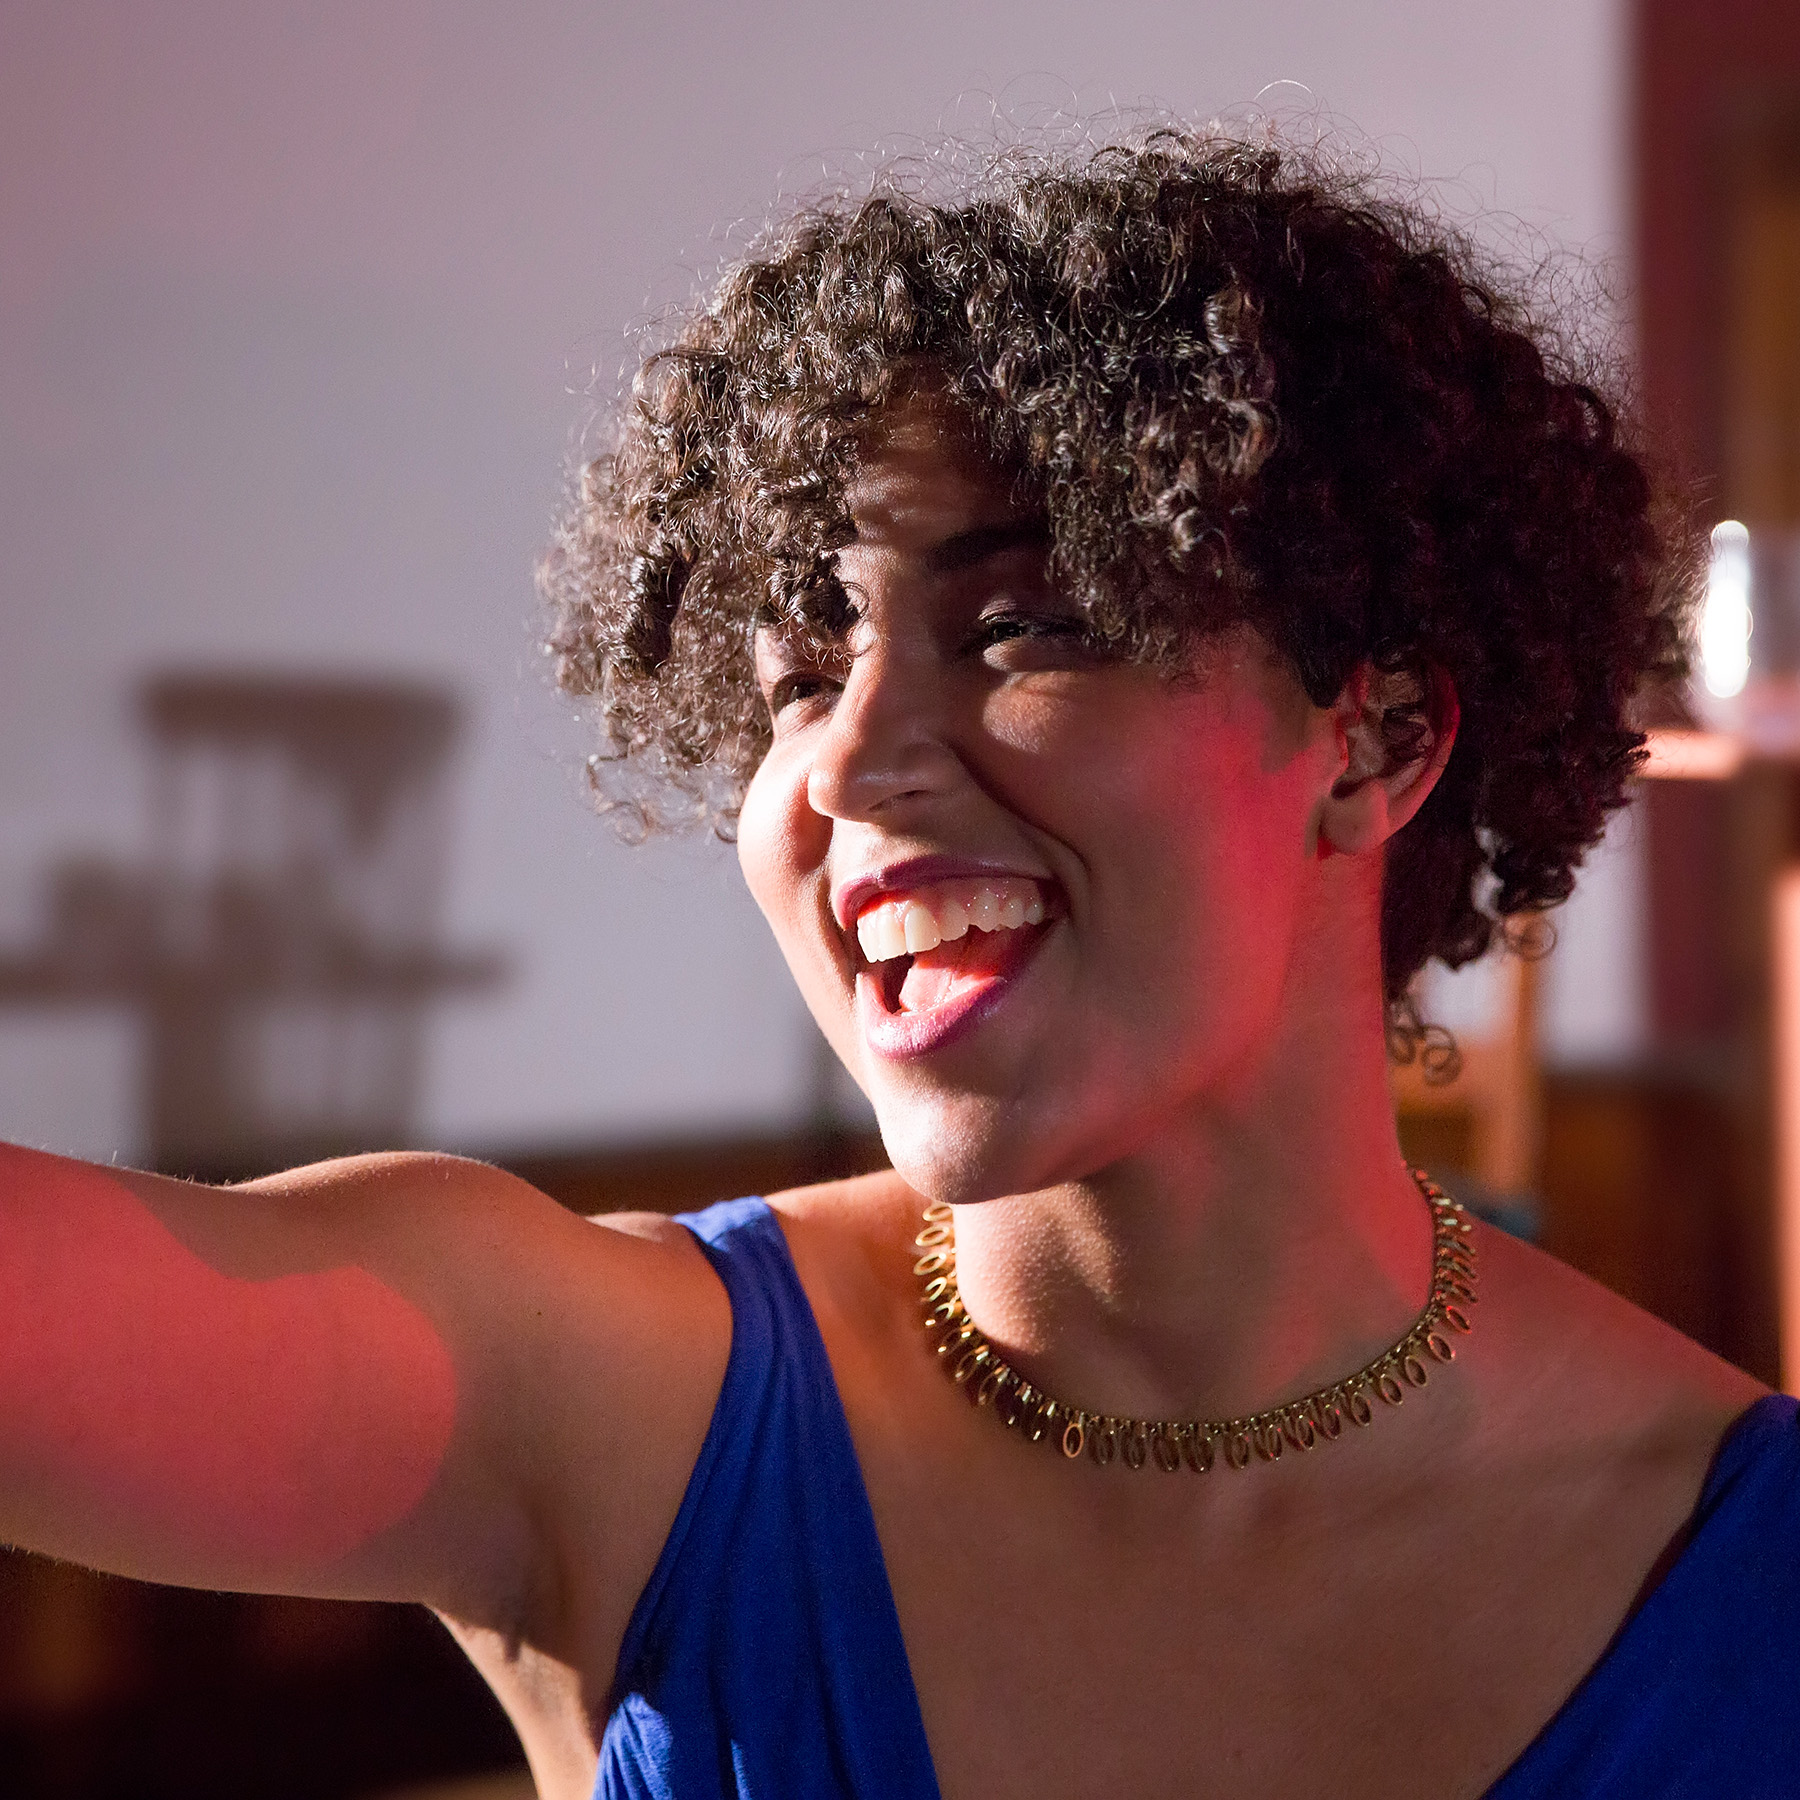 A Black non-binary person with natural hair is onstage, wearing a blue top and gold necklace, bathed in red light. They have one arm outstretched, and a joyous smile on their face.